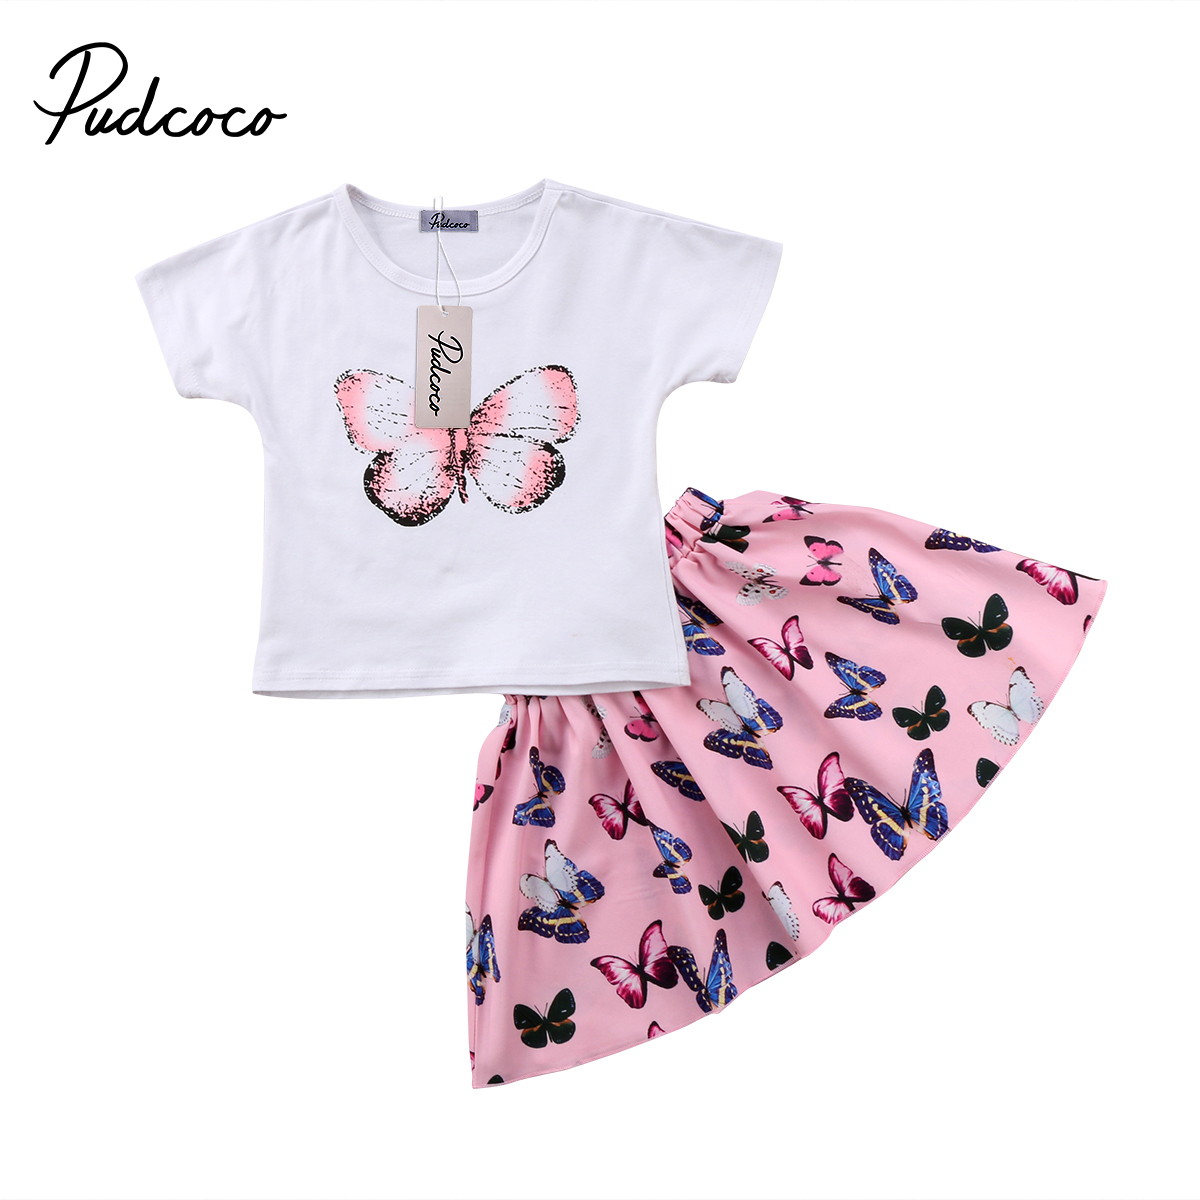 Butterfly Baby Kids Girls Clothing Sets Toddler Kids T-shirt Tops+Skirts 2Pcs Outfits Clothes